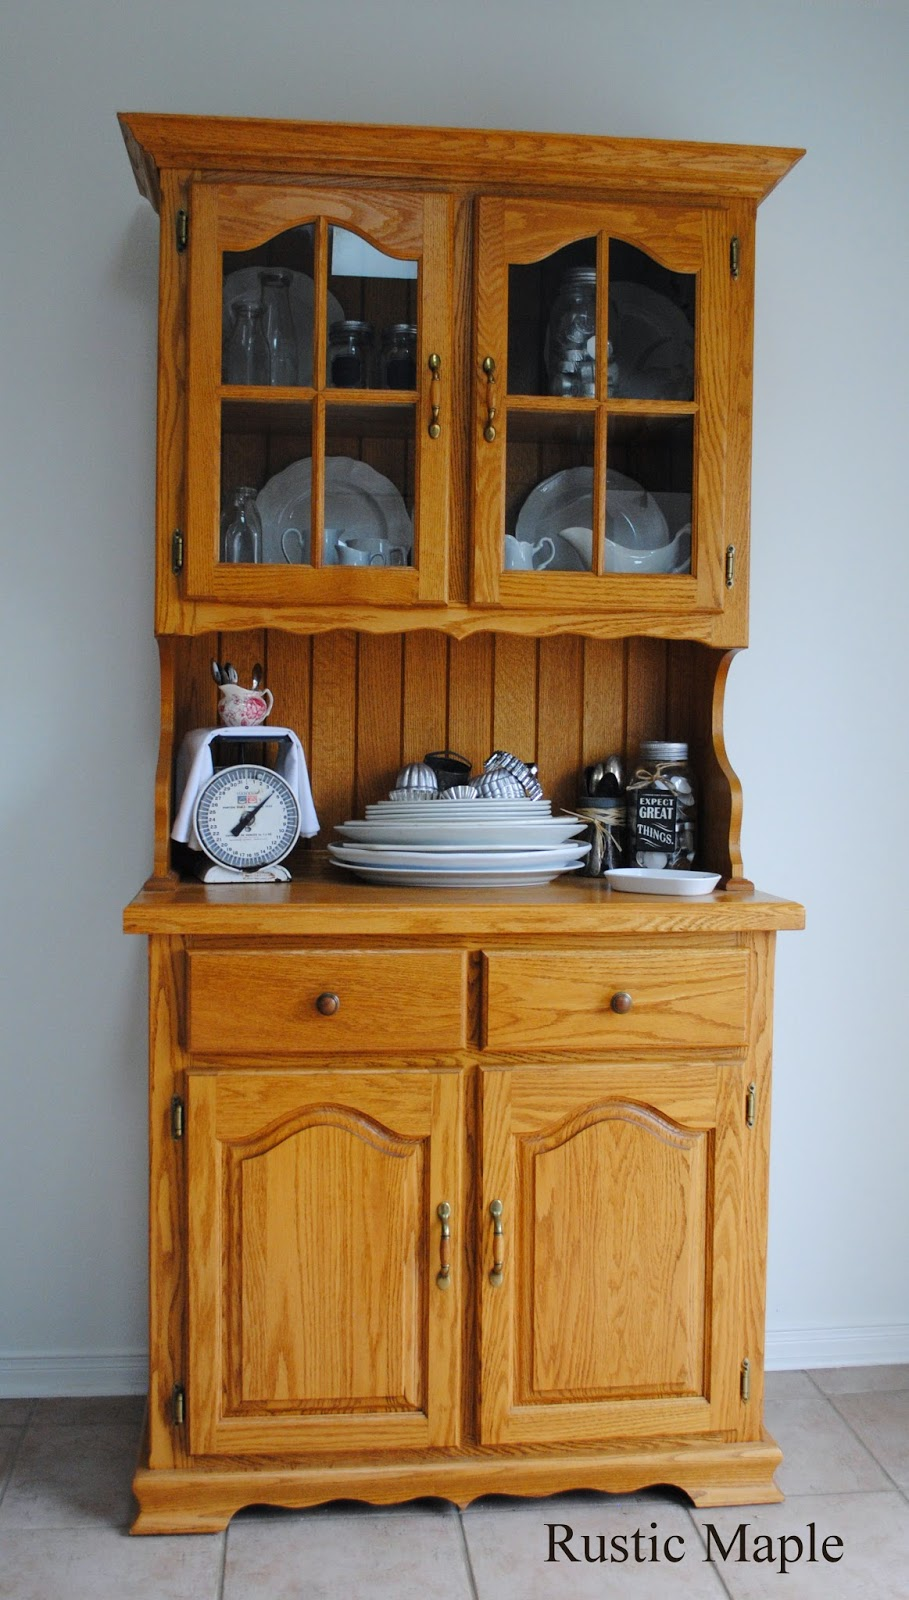 Superieur Rustic Maple: Oak Buffet And Hutch With Fusion Mineral Paint In Coal Black